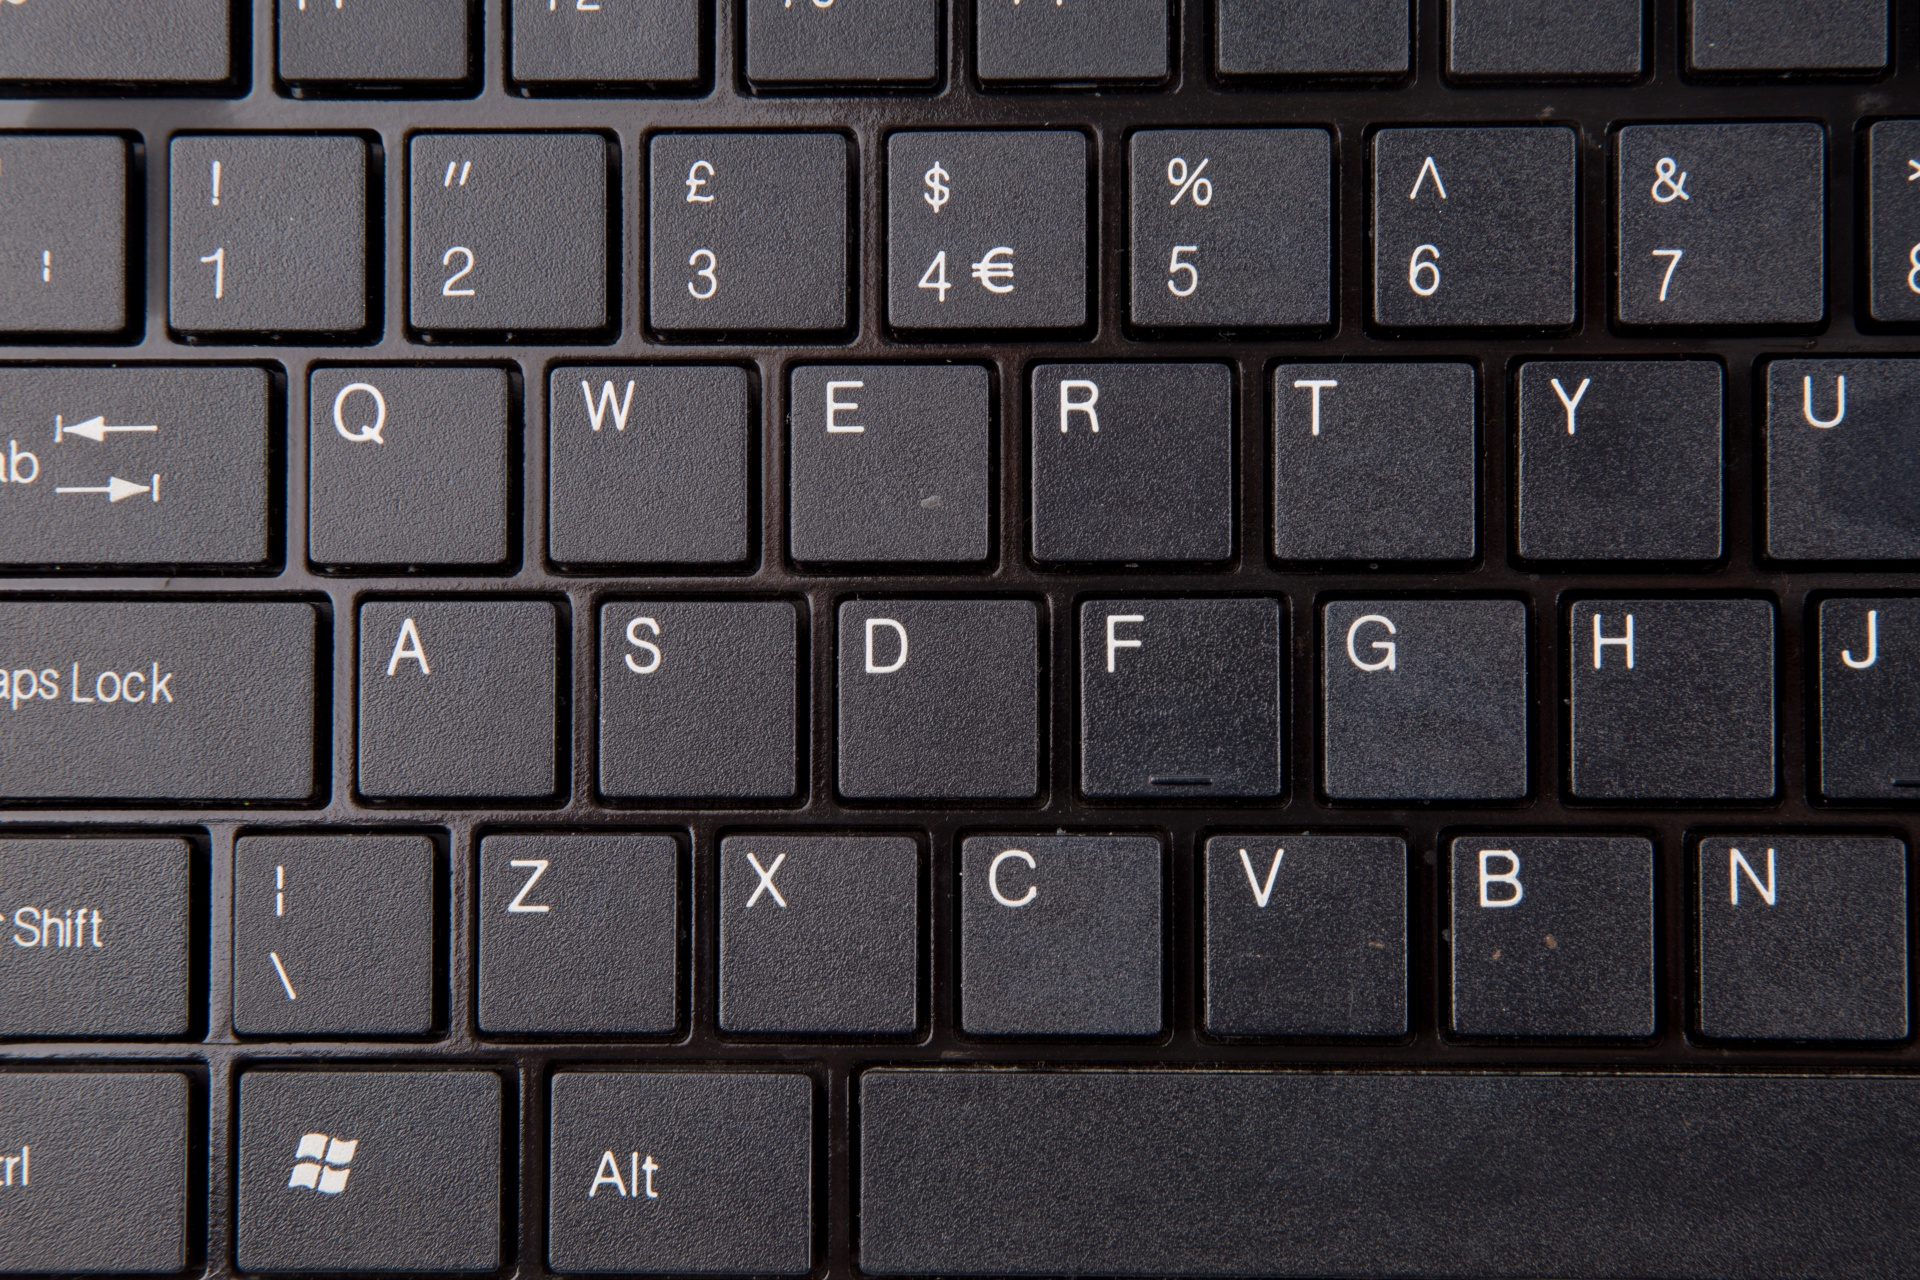 The Important Features Of Keyboards